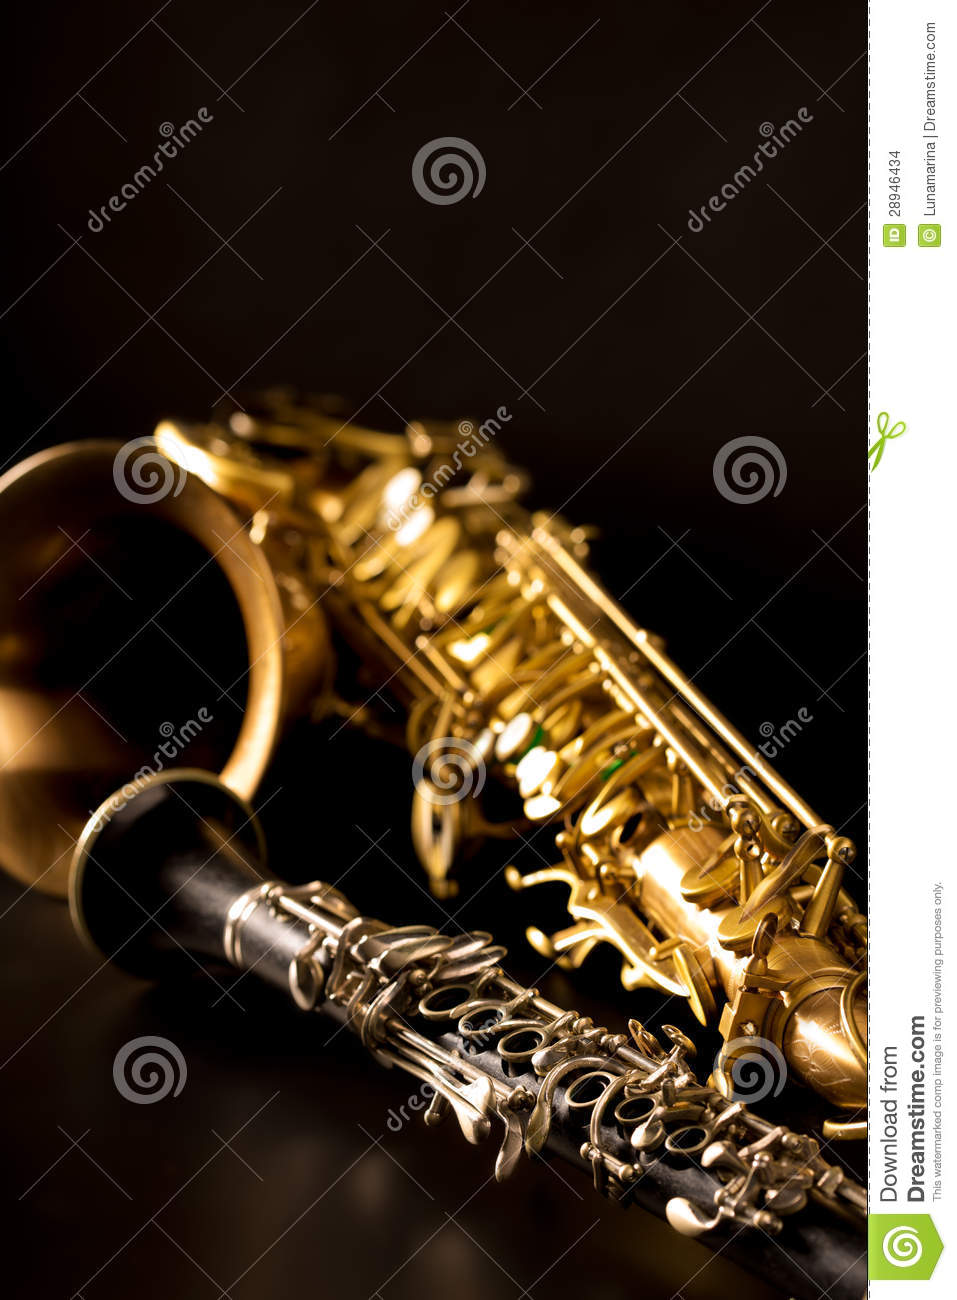 3d Animation Wallpaper Android Classic Music Sax Tenor Saxophone And Clarinet In Black